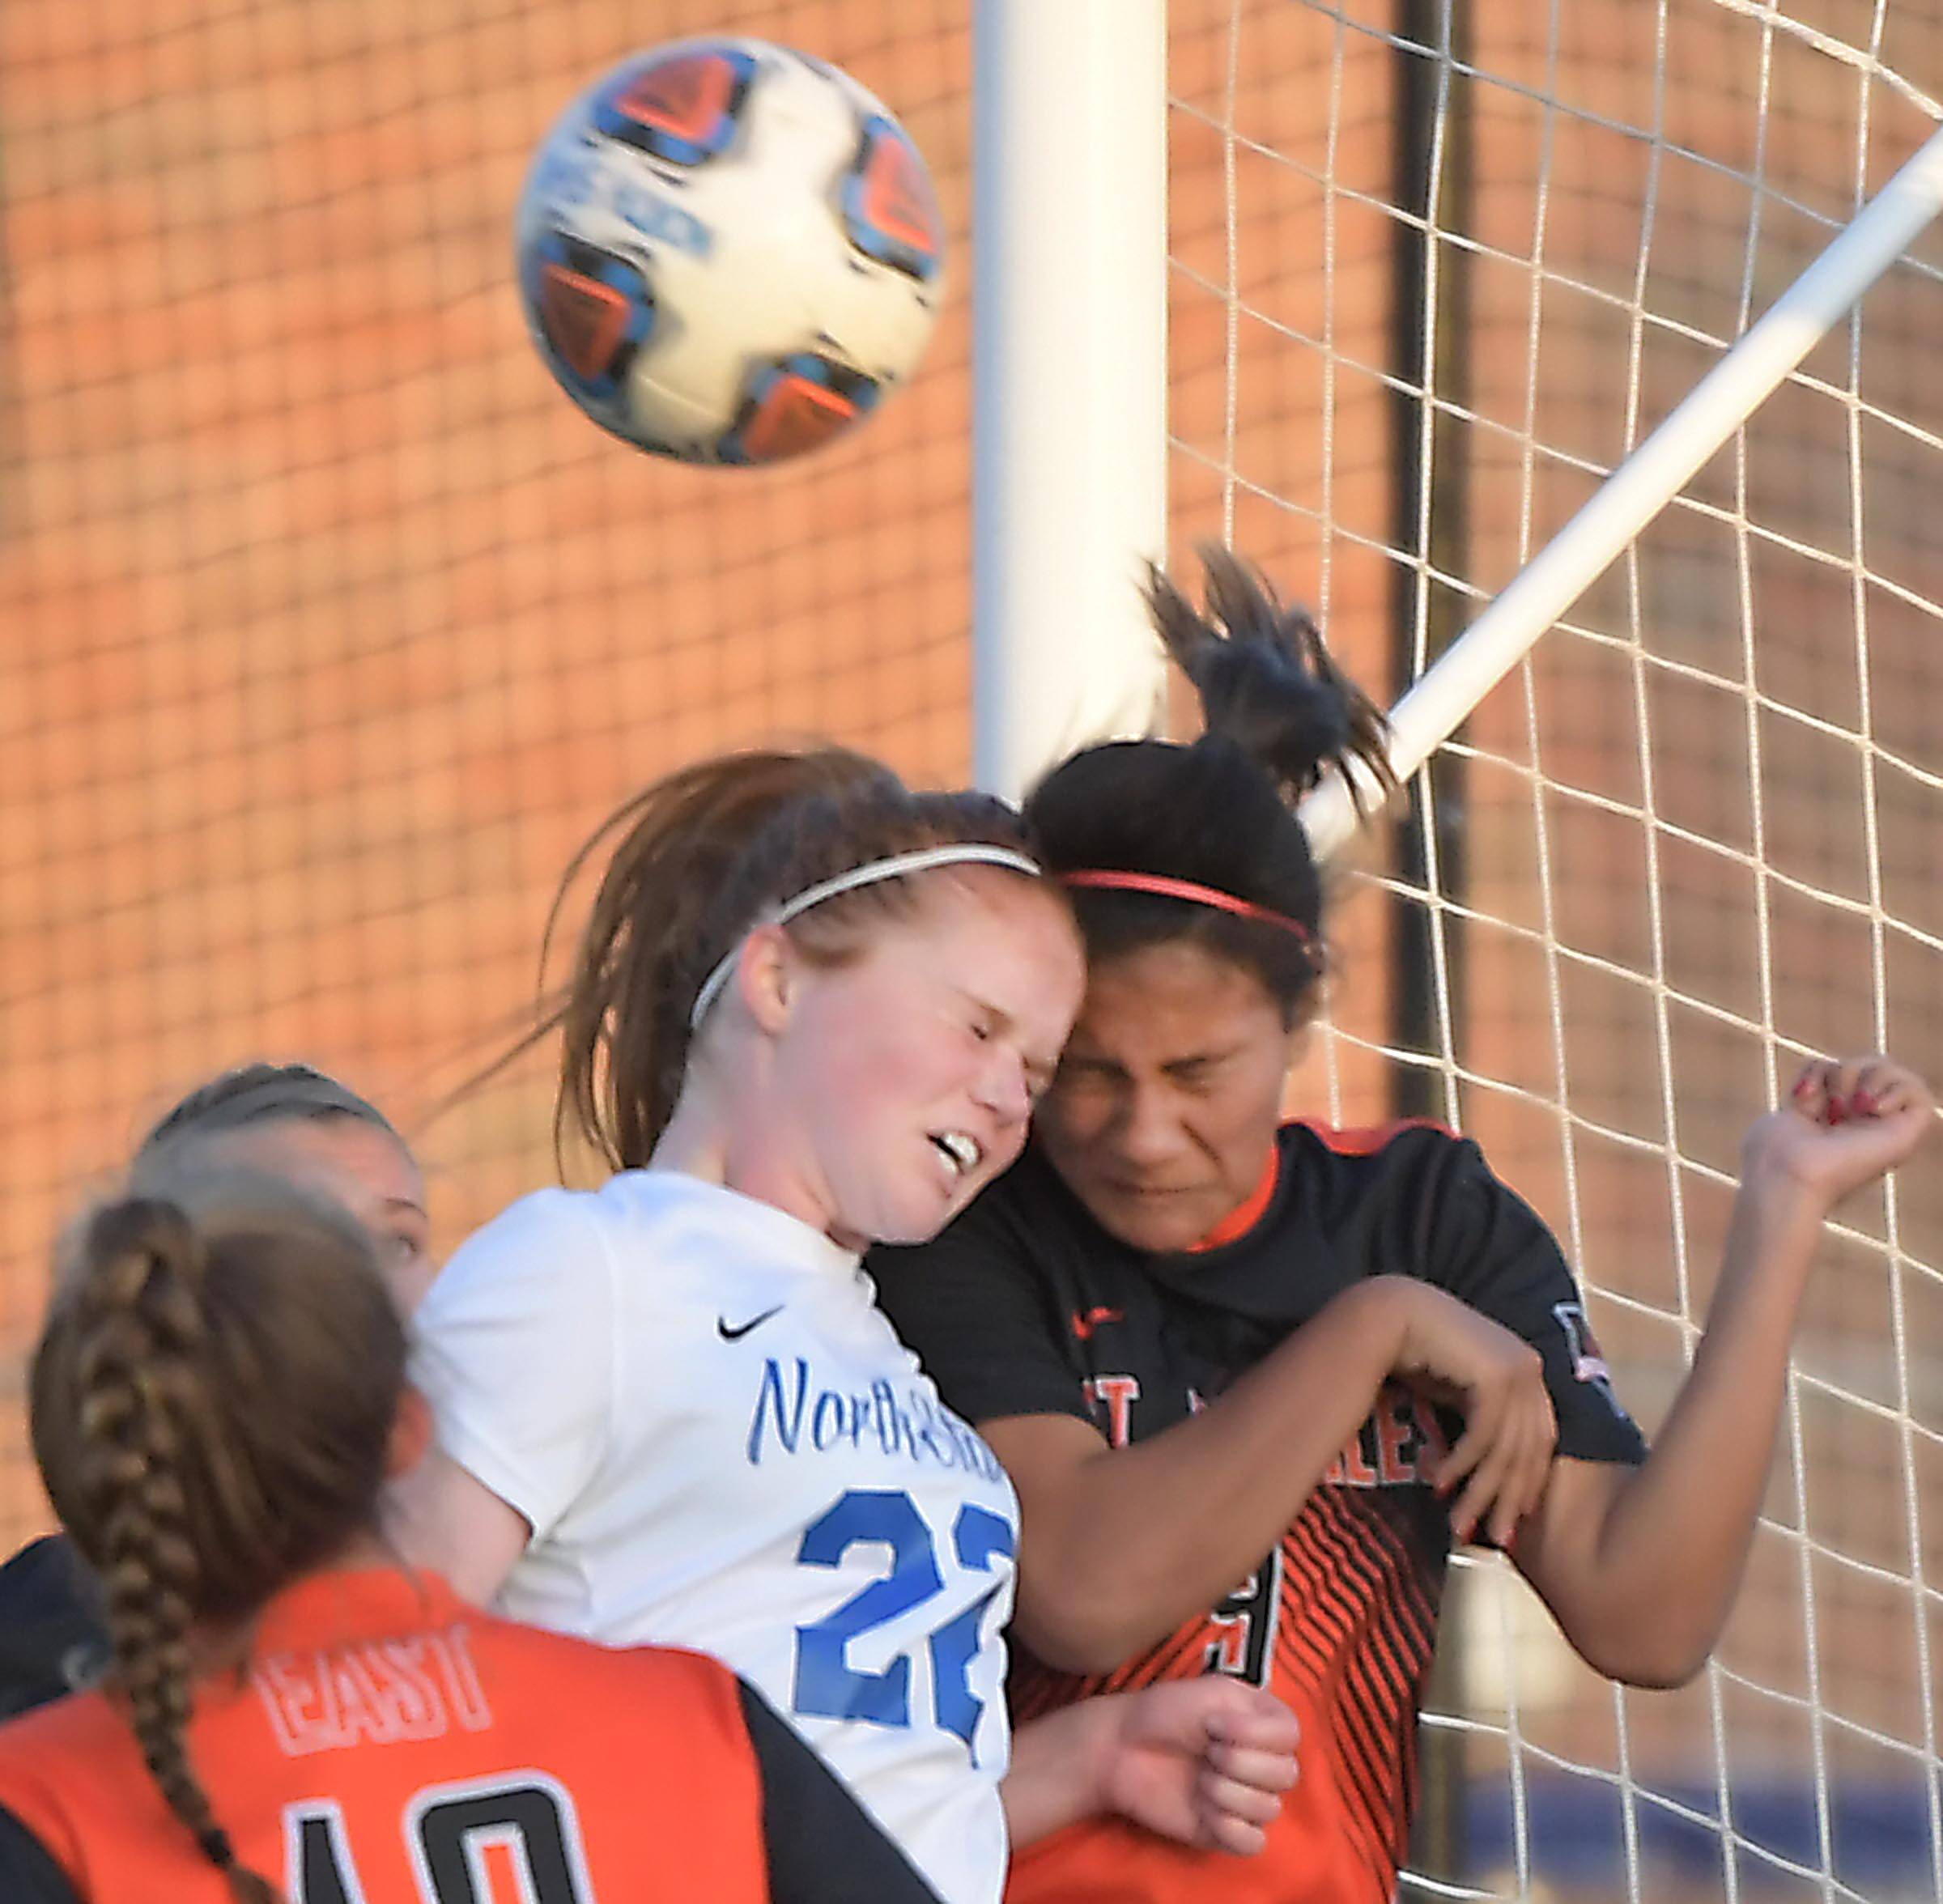 St. Charles North's Cassidy Joyce and St. Charles East's Alondra Carranza collide as they head the ball in a girls soccer game at North High School Tuesday.